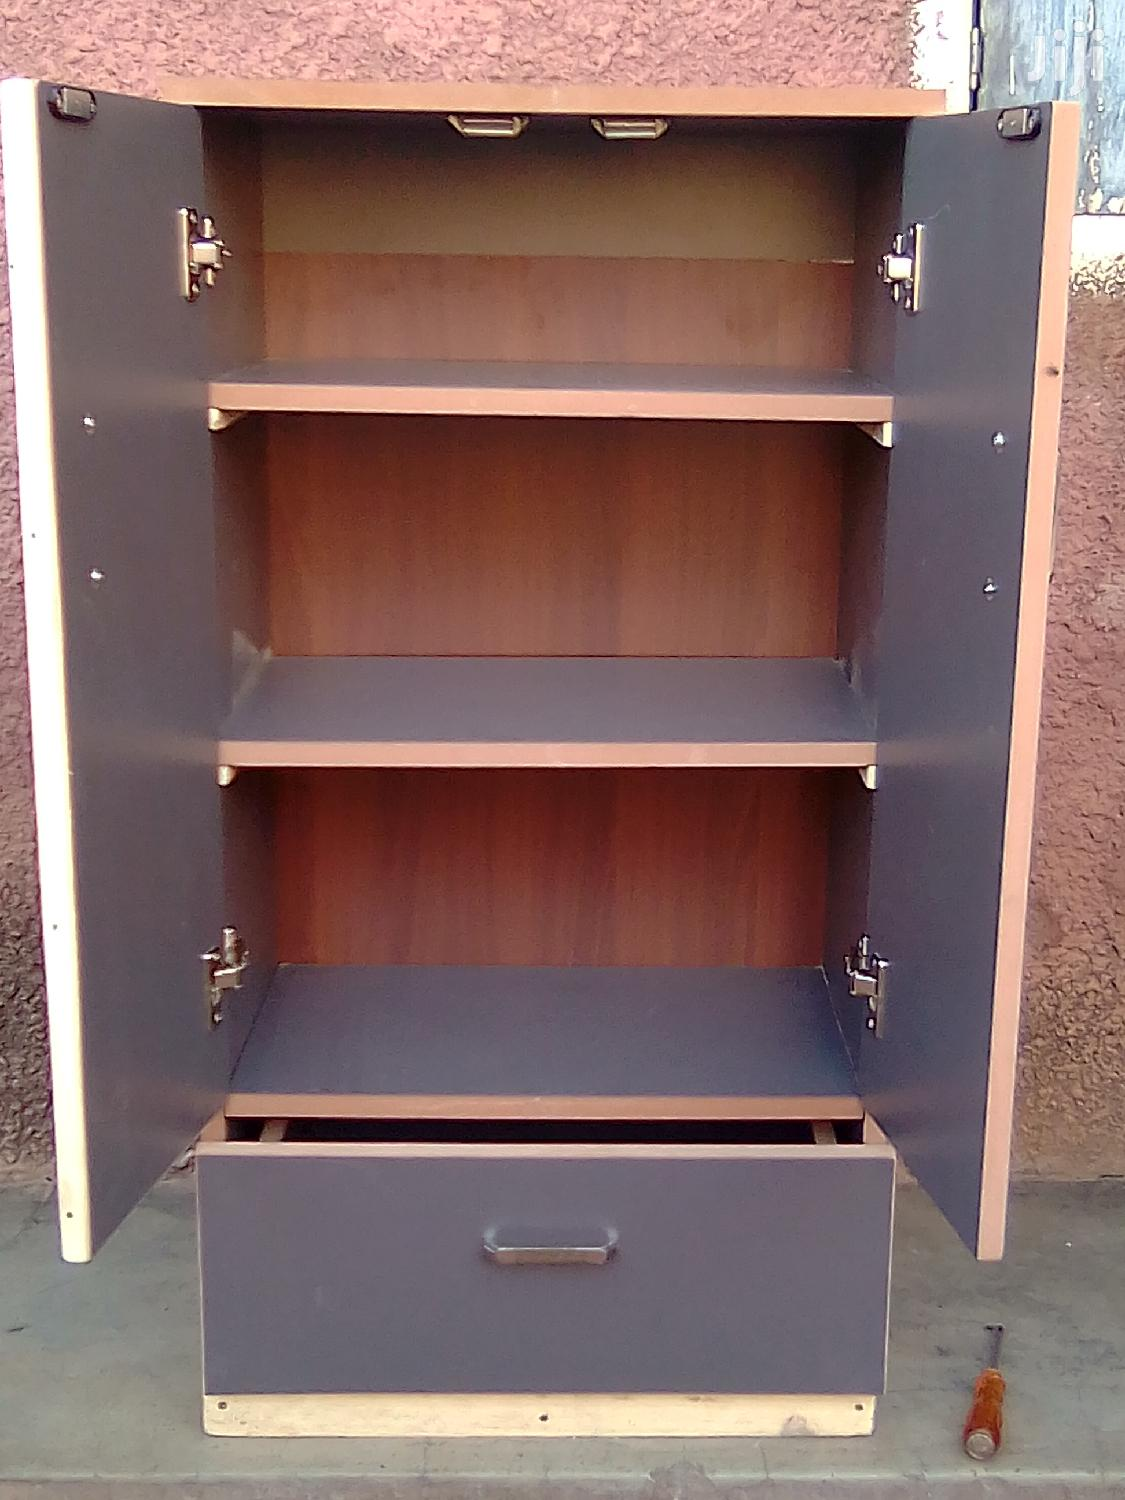 Furniture Products Of All Types | Manufacturing Services for sale in Kampala, Central Region, Uganda